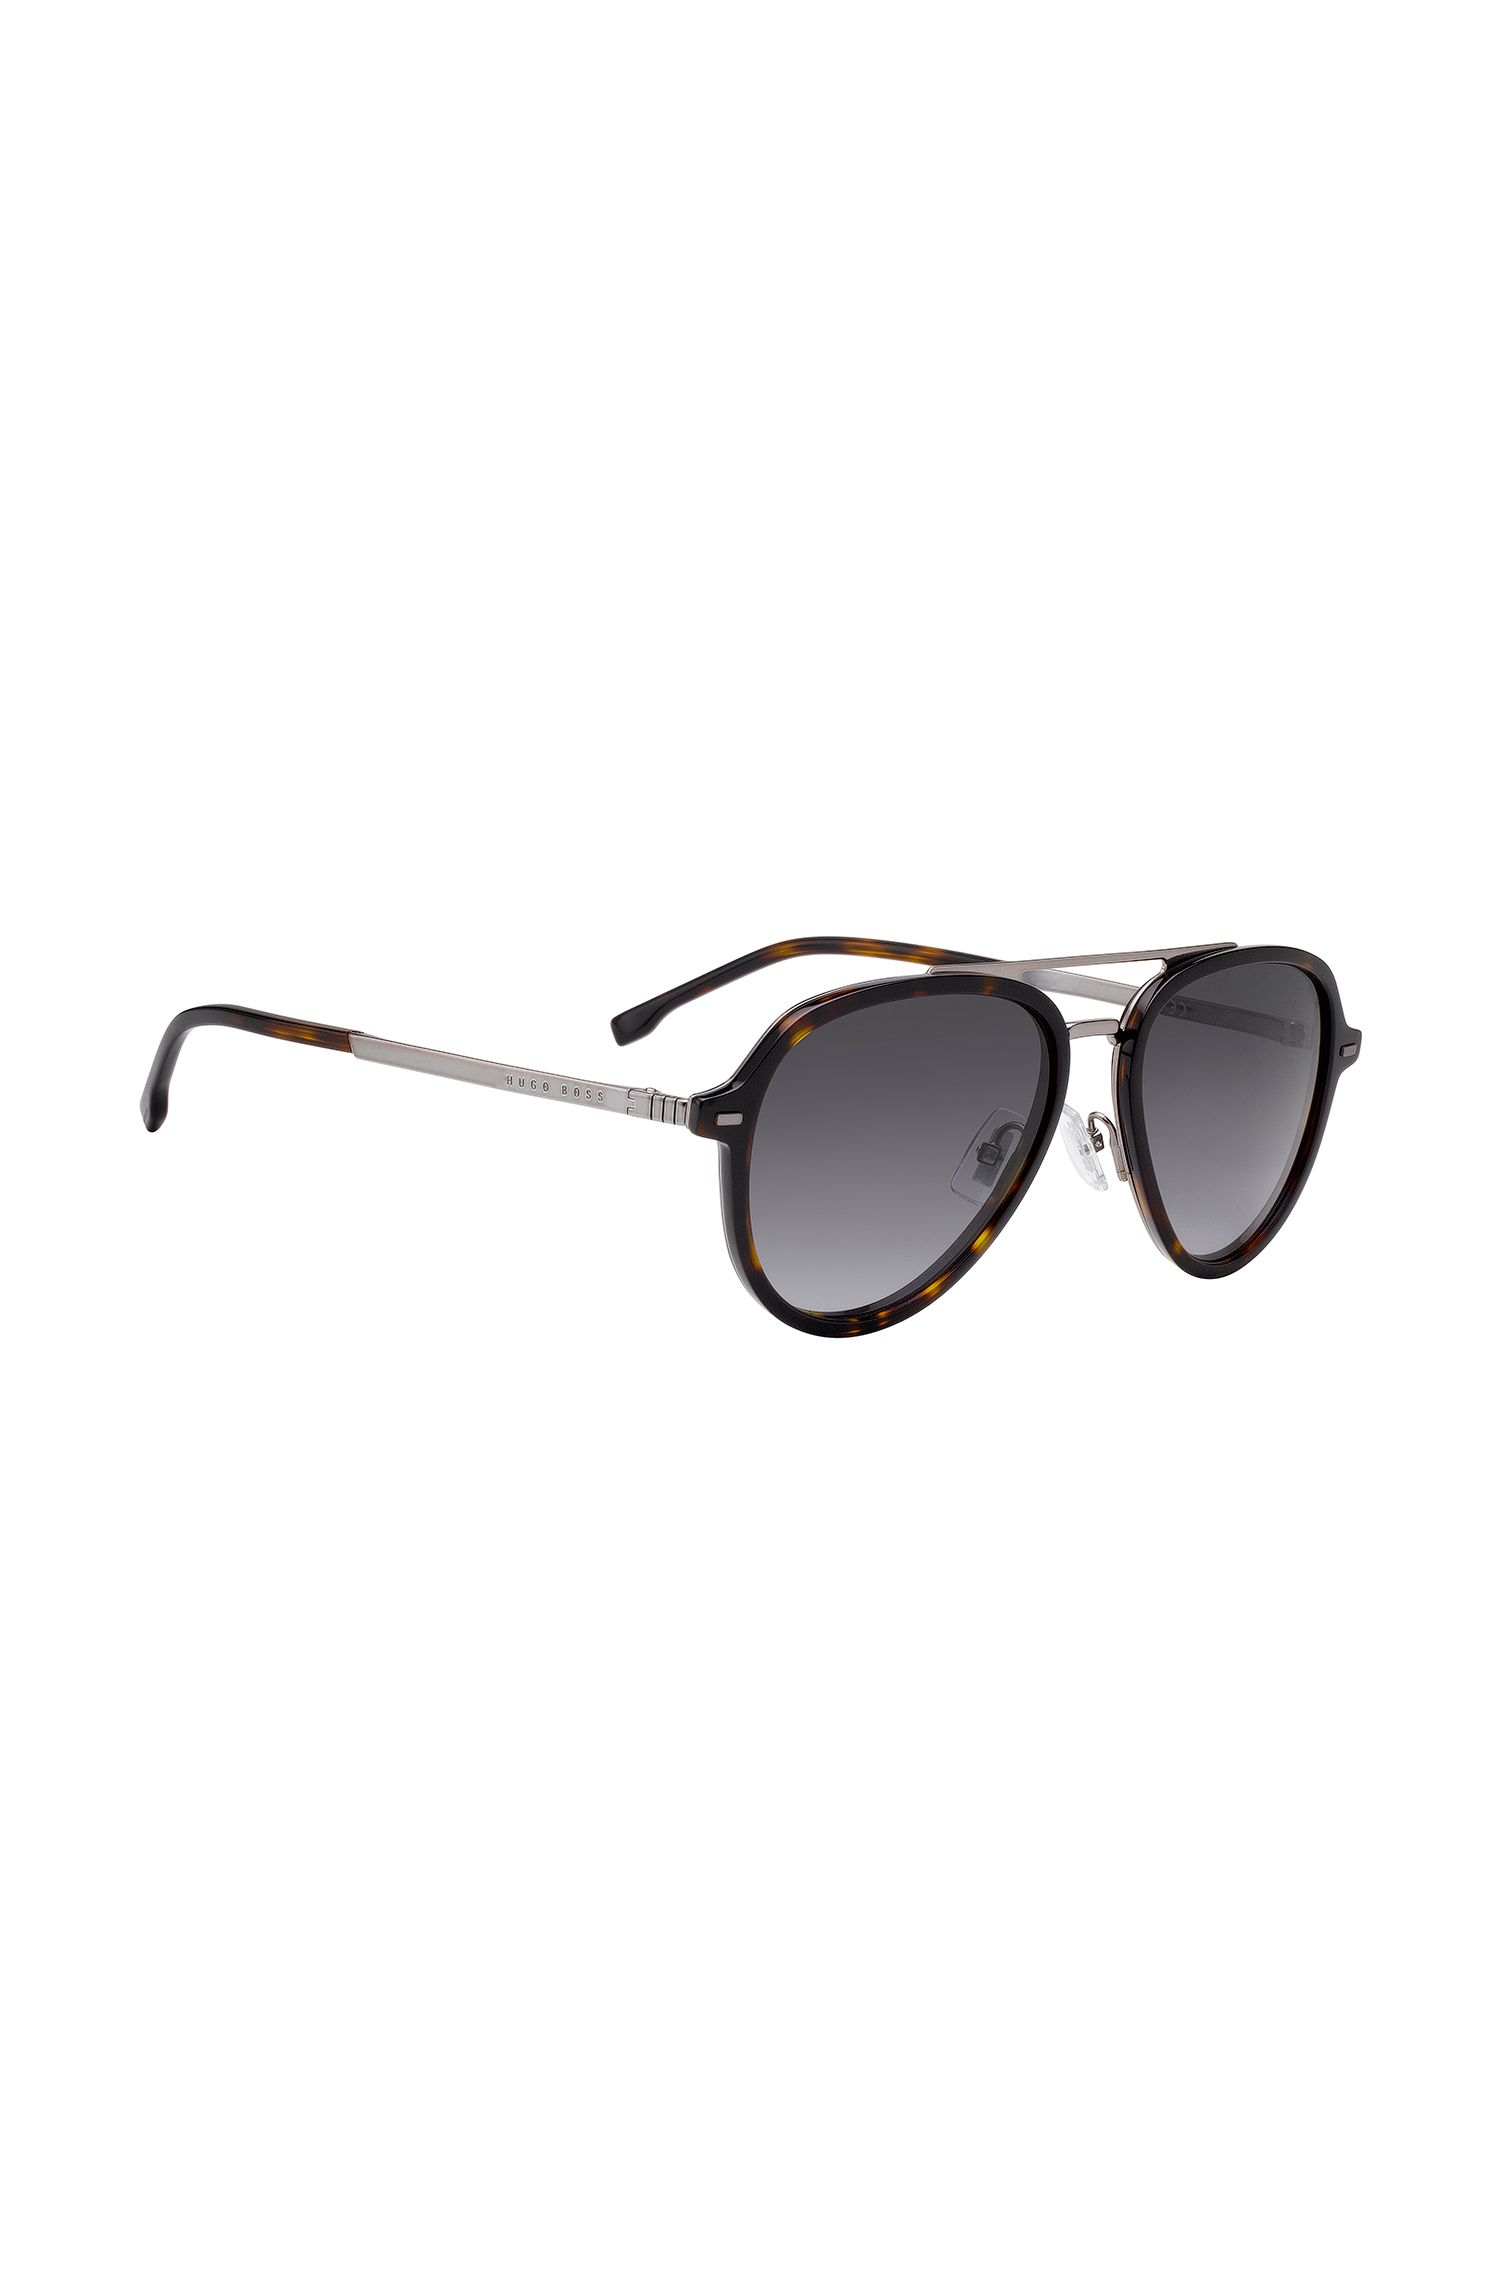 Double-bridge aviator sunglasses with brown Havana details, Assorted-Pre-Pack